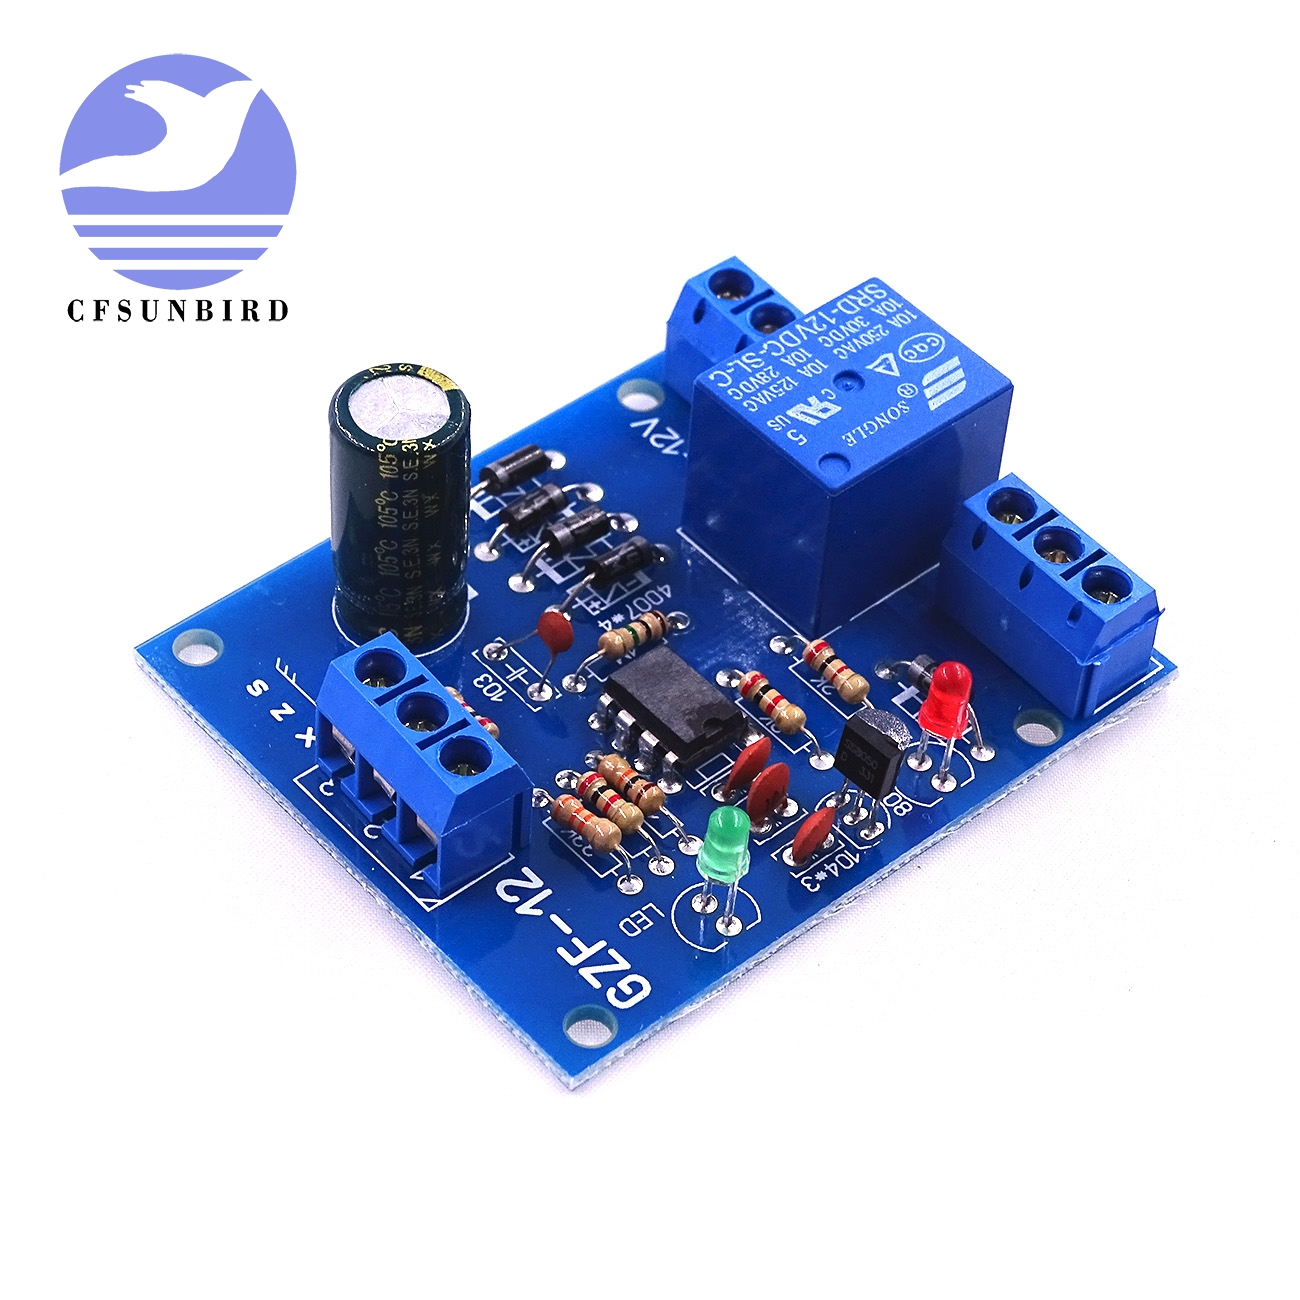 Electronic Components & Supplies 1 Pcs/lot Cfsunbird Liquid Level Controller Sensor Module Water Level Detection Sensor Electronic Components